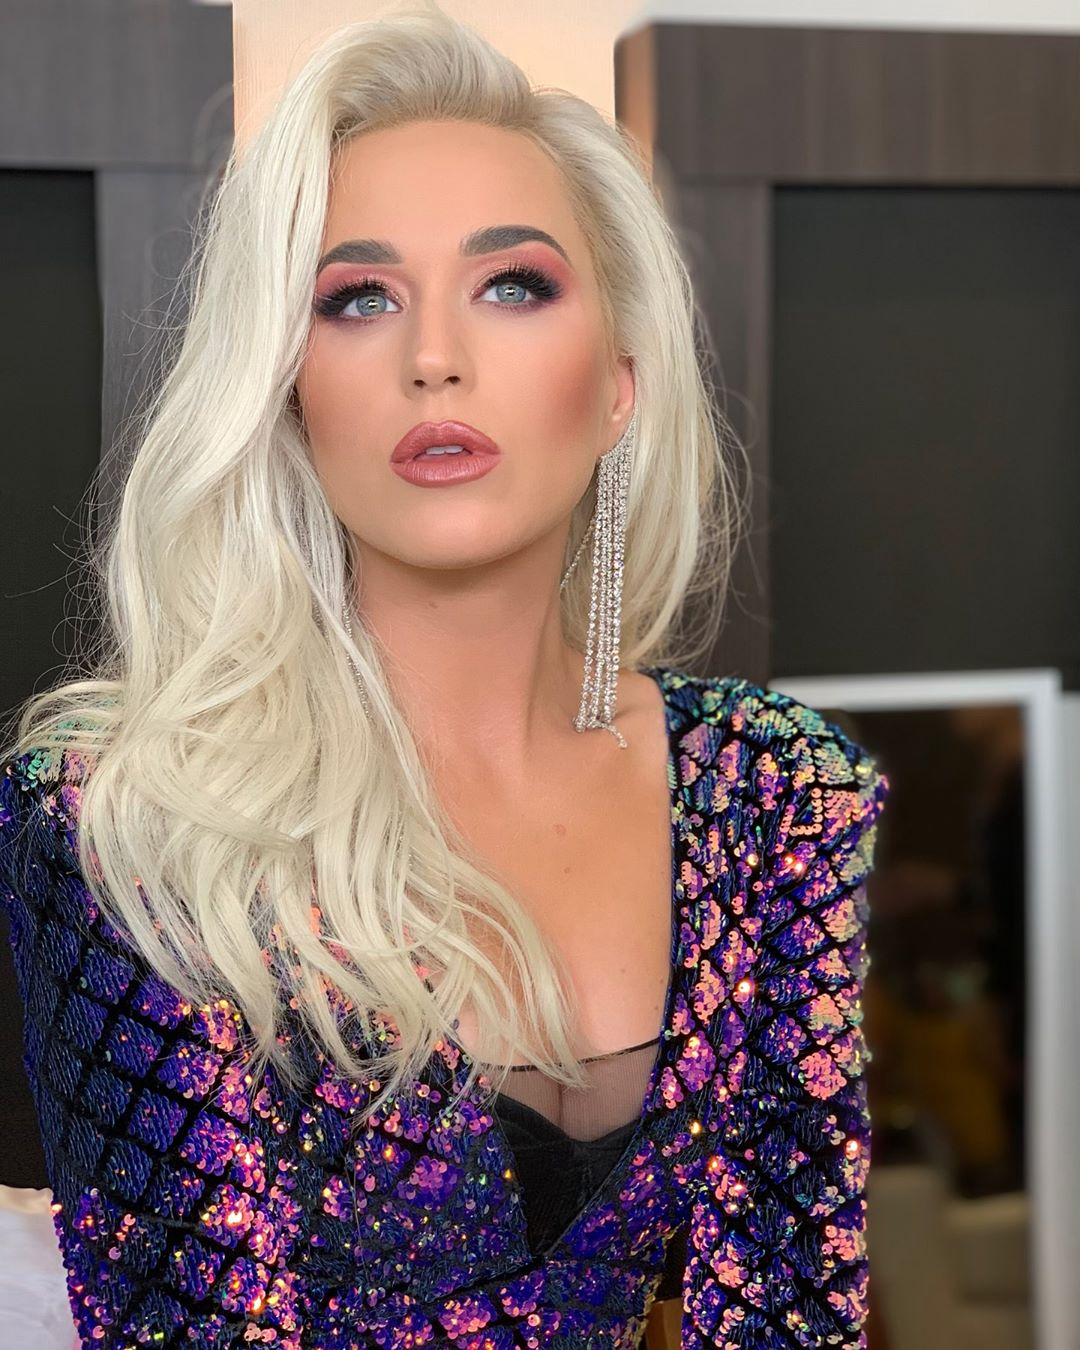 The dream rapper dating katy